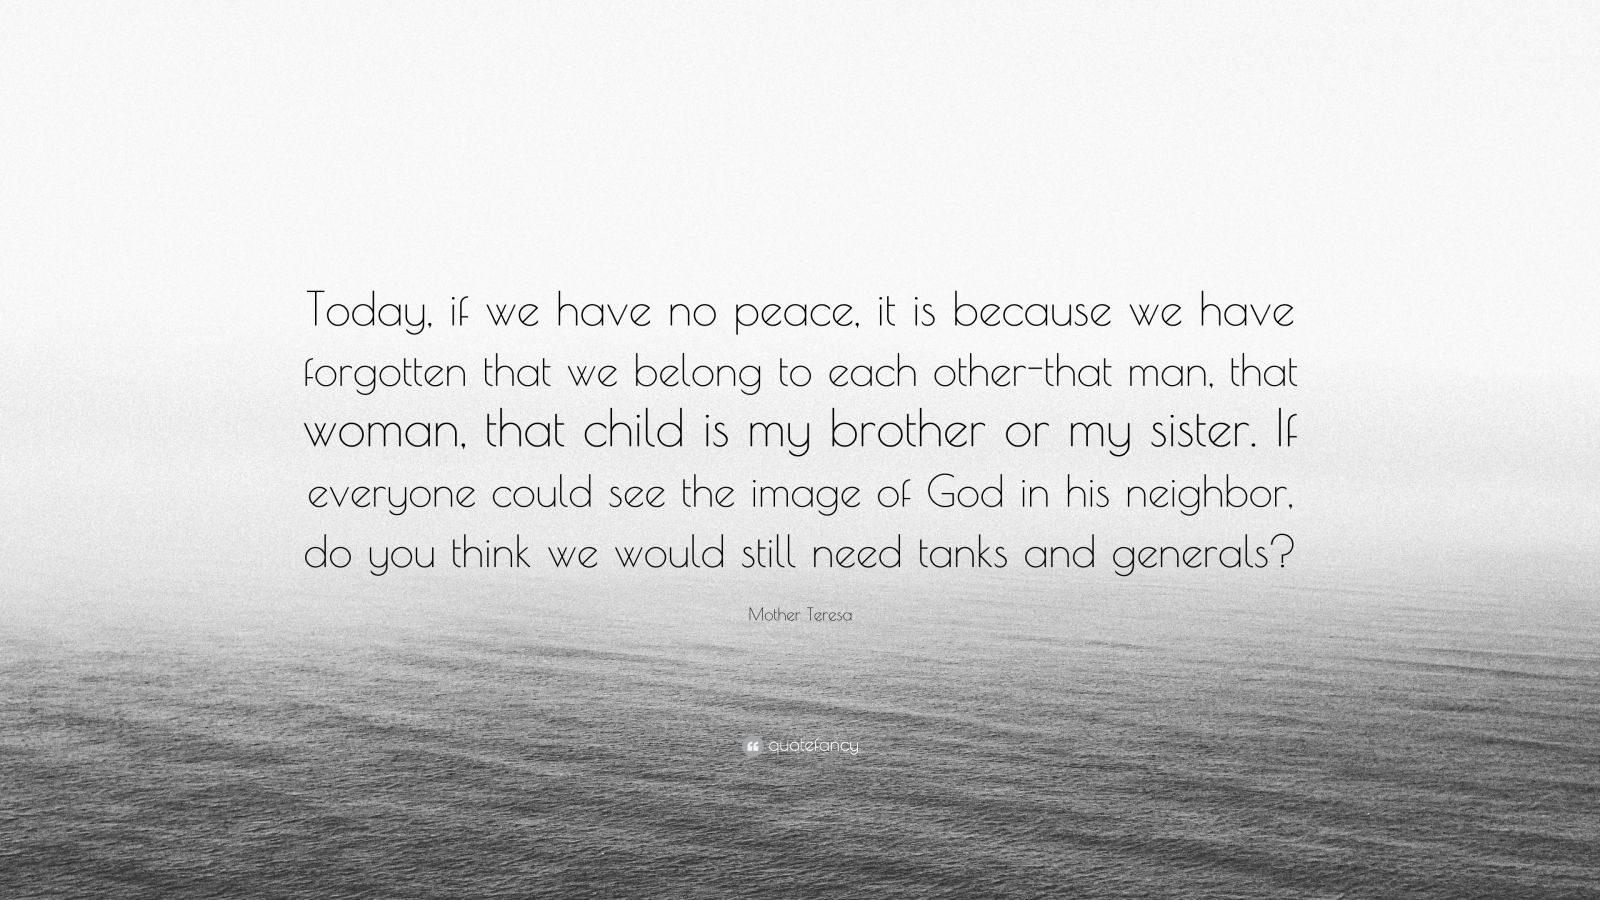 """Mother Teresa Quote: """"Today, if we have no peace, it is because we have forgotten that we belong to each other-that man, that woman, that child is my brother or my sister. If everyone could see the image of God in his neighbor, do you think we would still need tanks and generals?"""""""